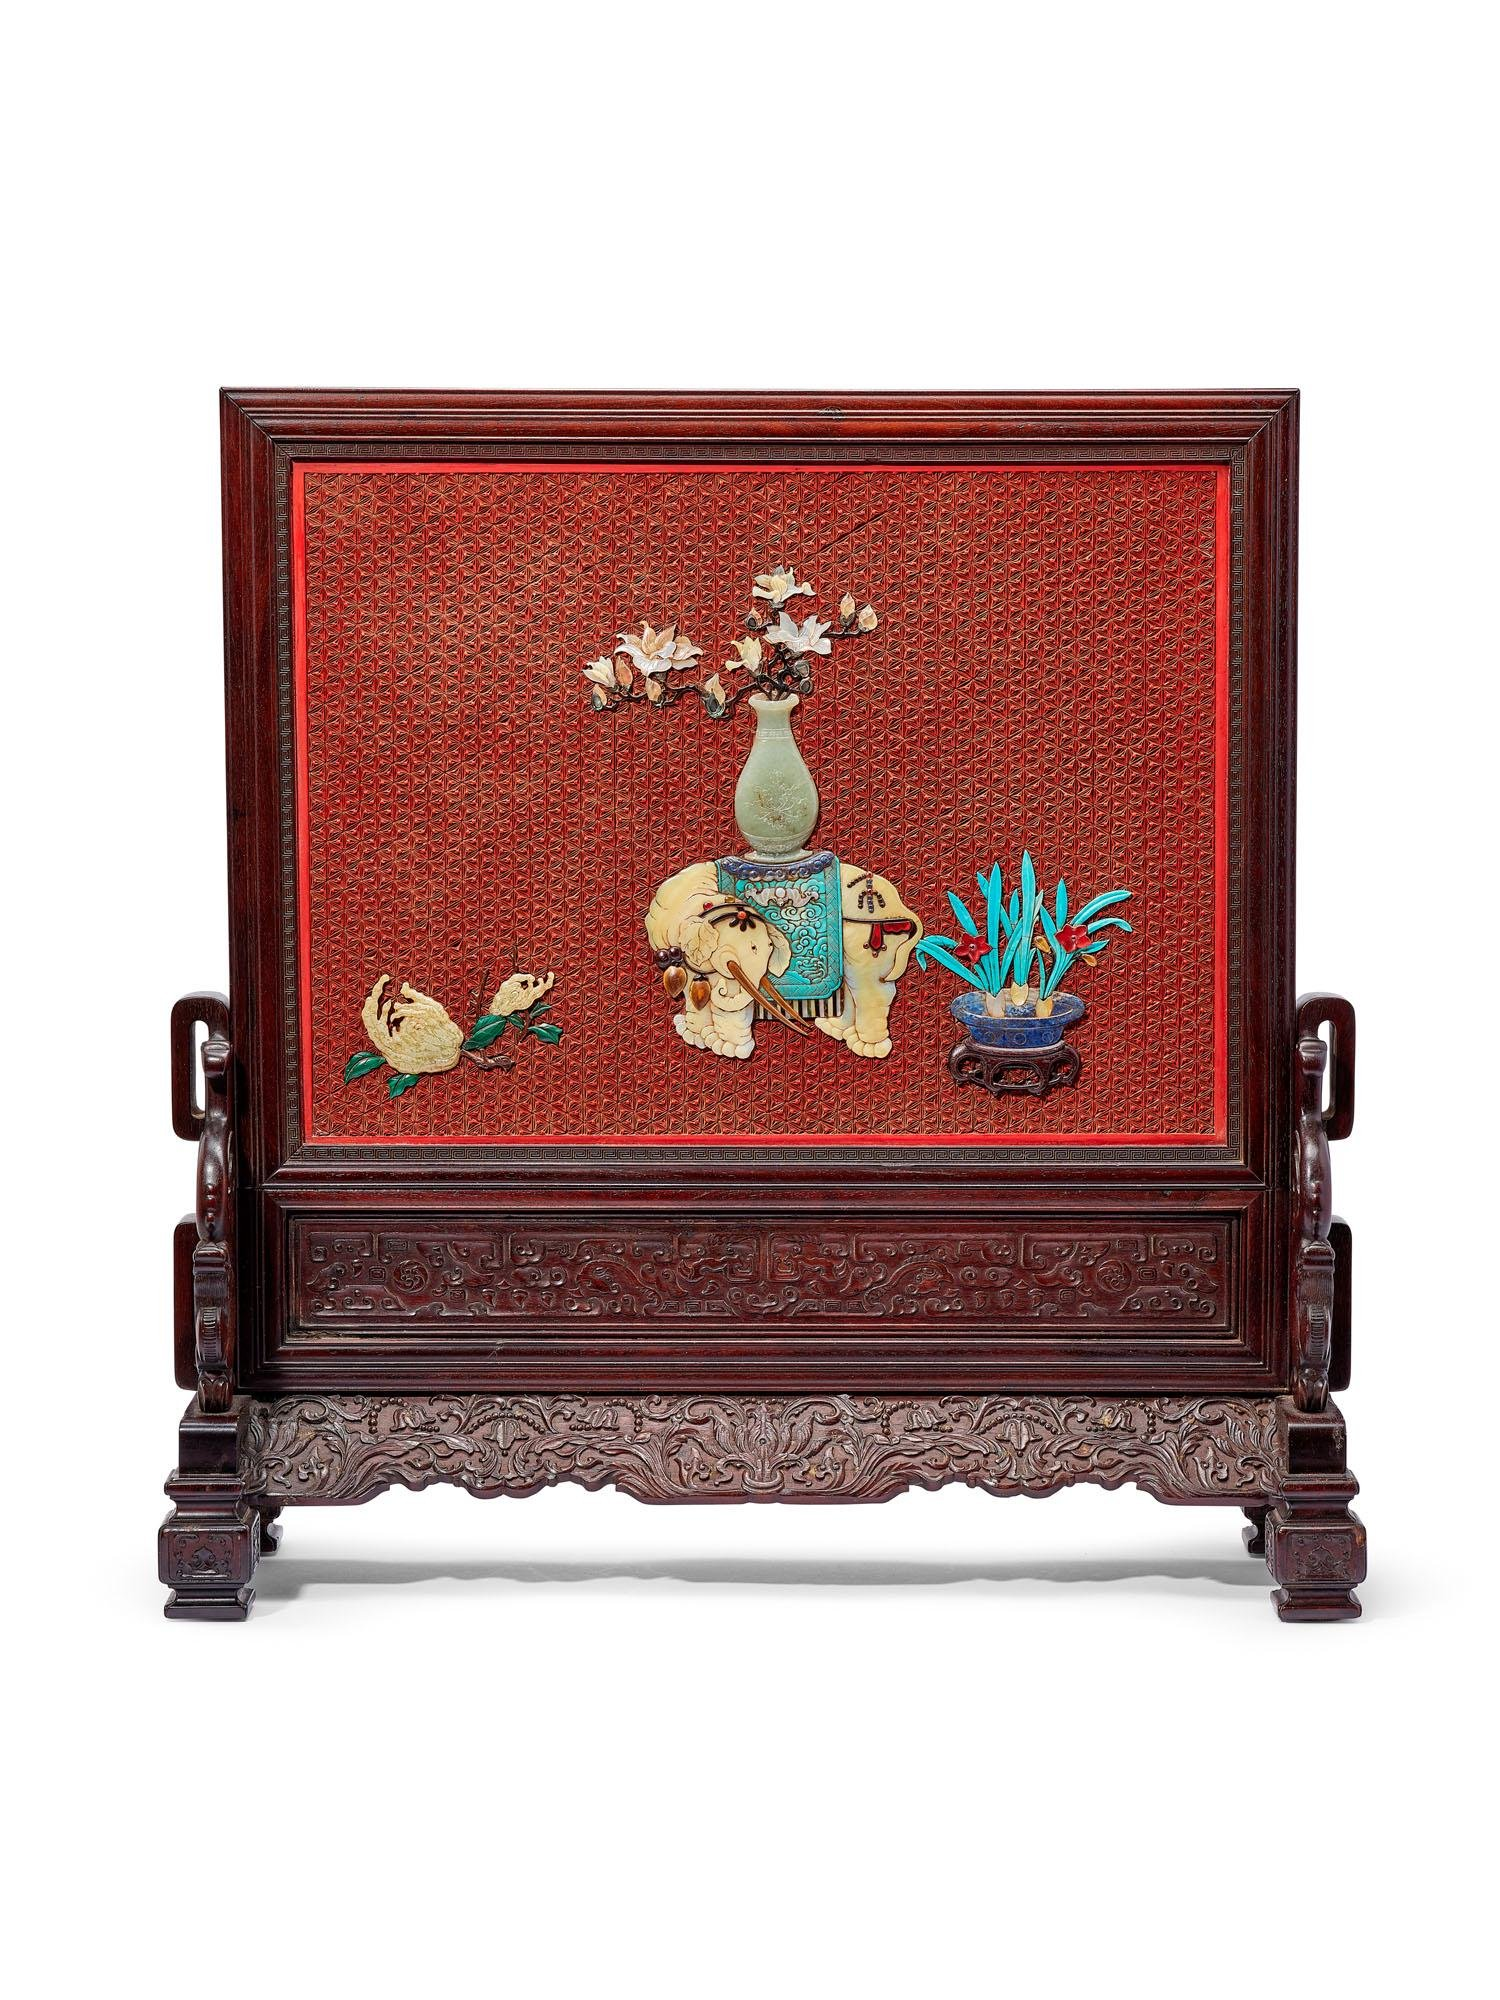 A HARDSTONE AND CINNABAR LACQUER-INLAID TABLE SCREEN